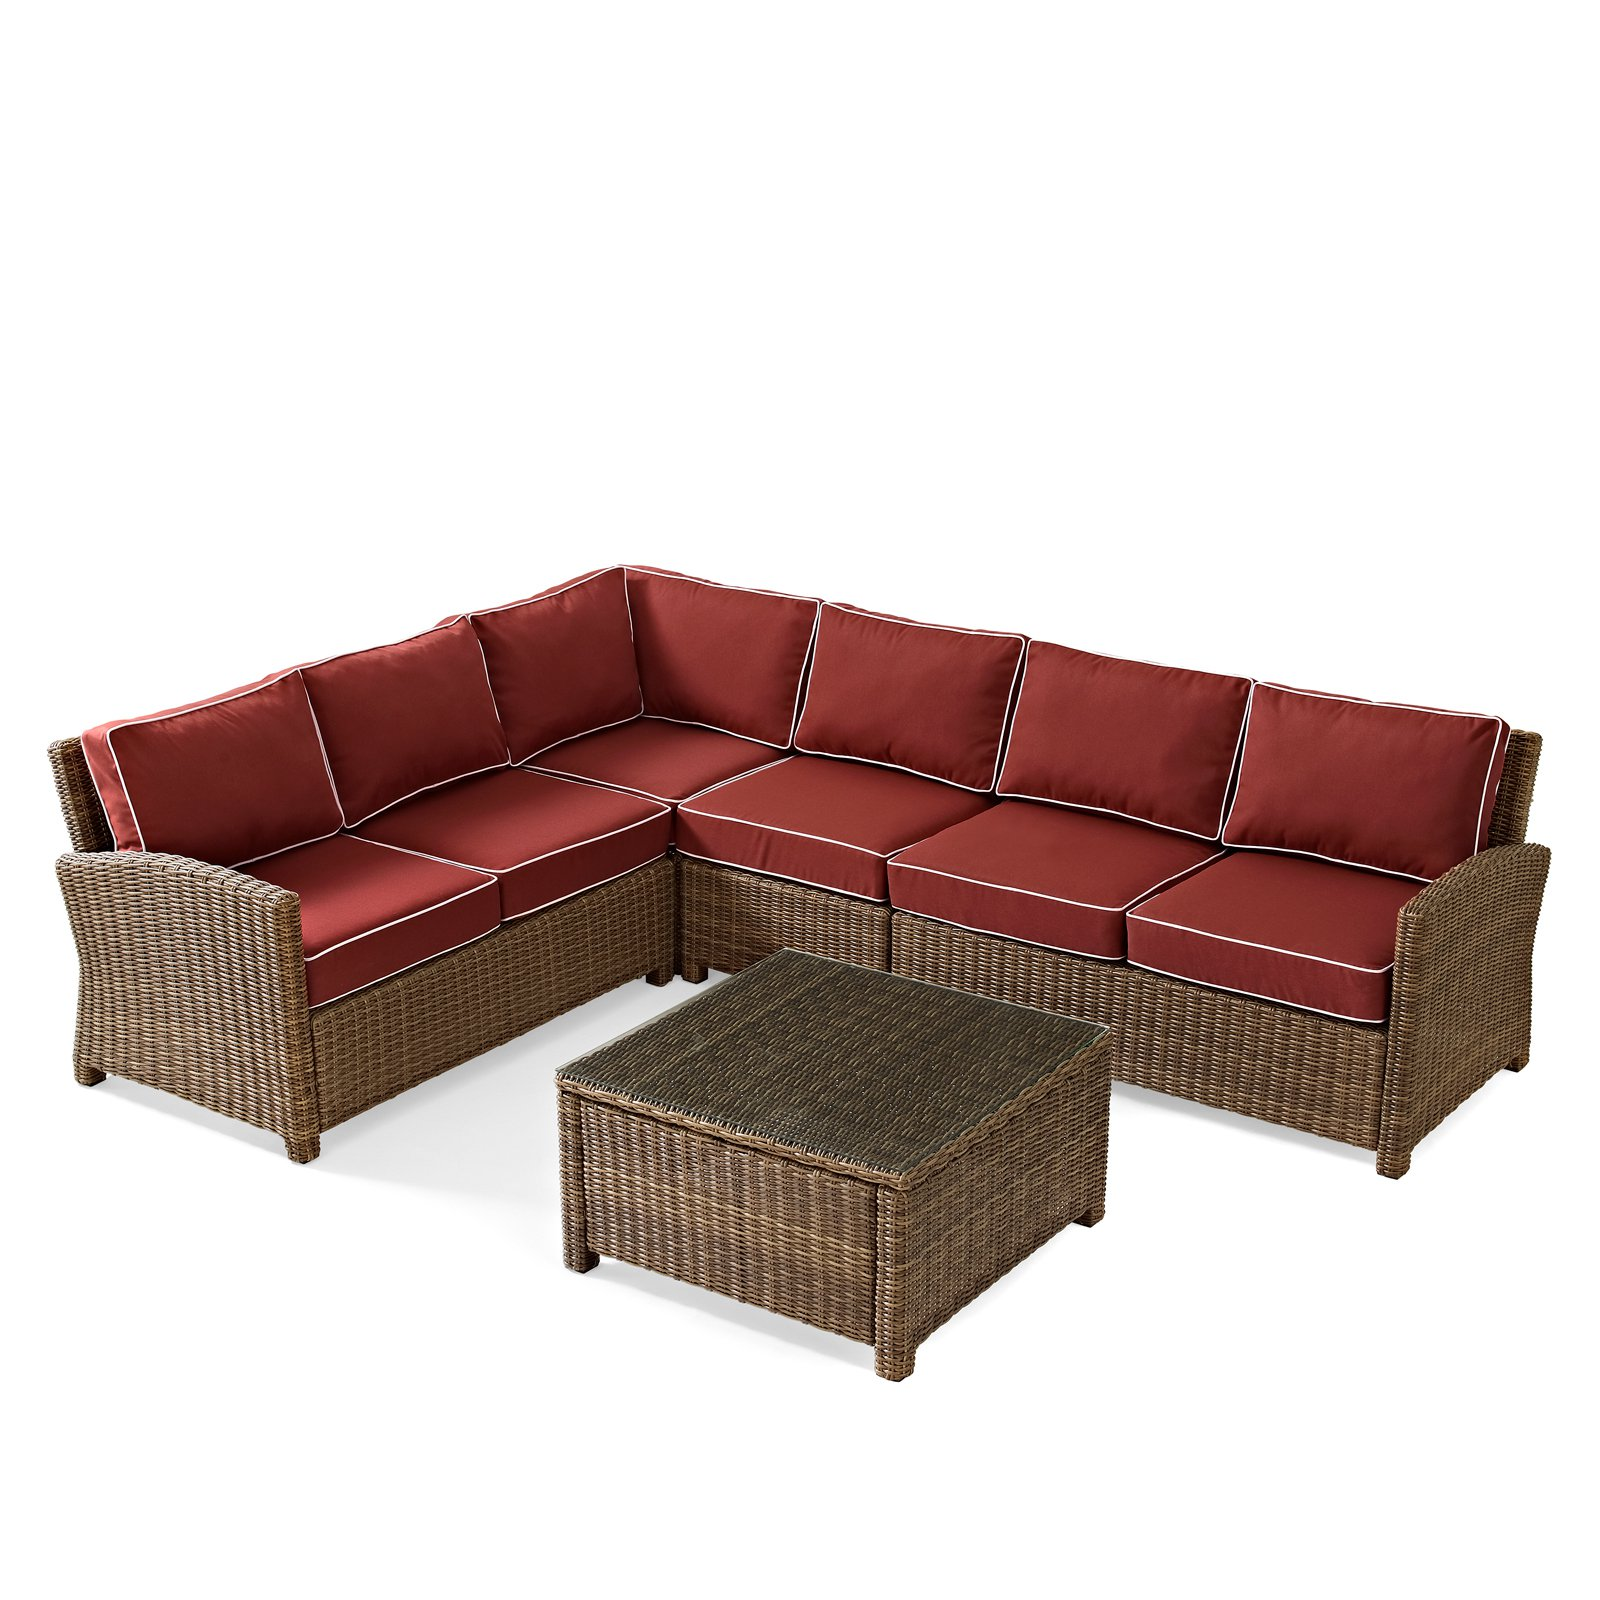 Crosley Furniture Bradenton 5-Piece Outdoor Wicker Seating Set with Sangria Cushions - Right Corner Loveseat, Left Corner Loveseat, Corner Chair, Center Chair, Sectional Glass Top Coffee Table